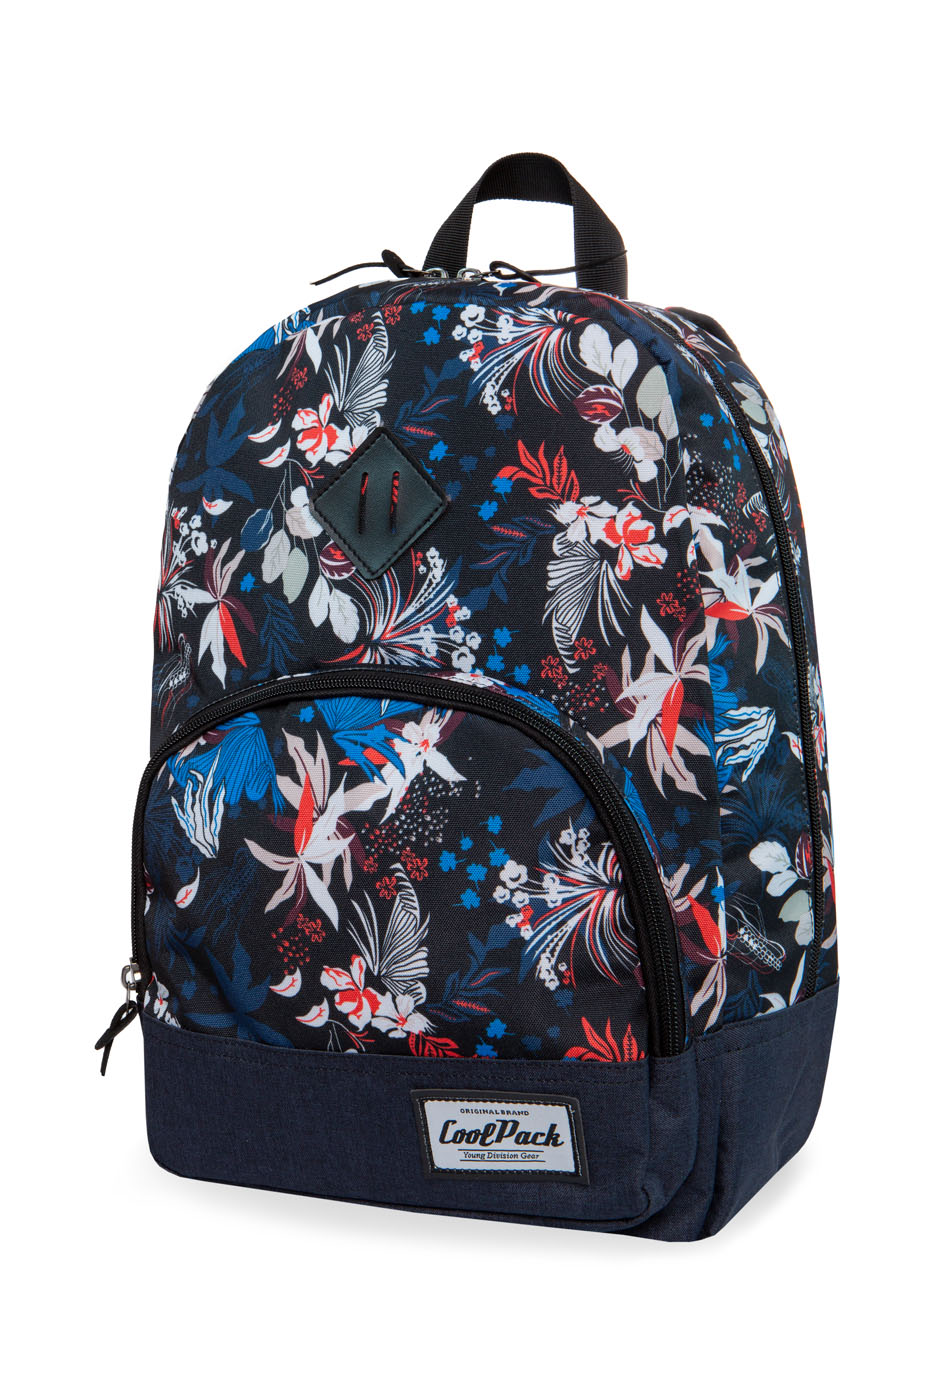 Coolpack - classic - youth backpack - ocean garden